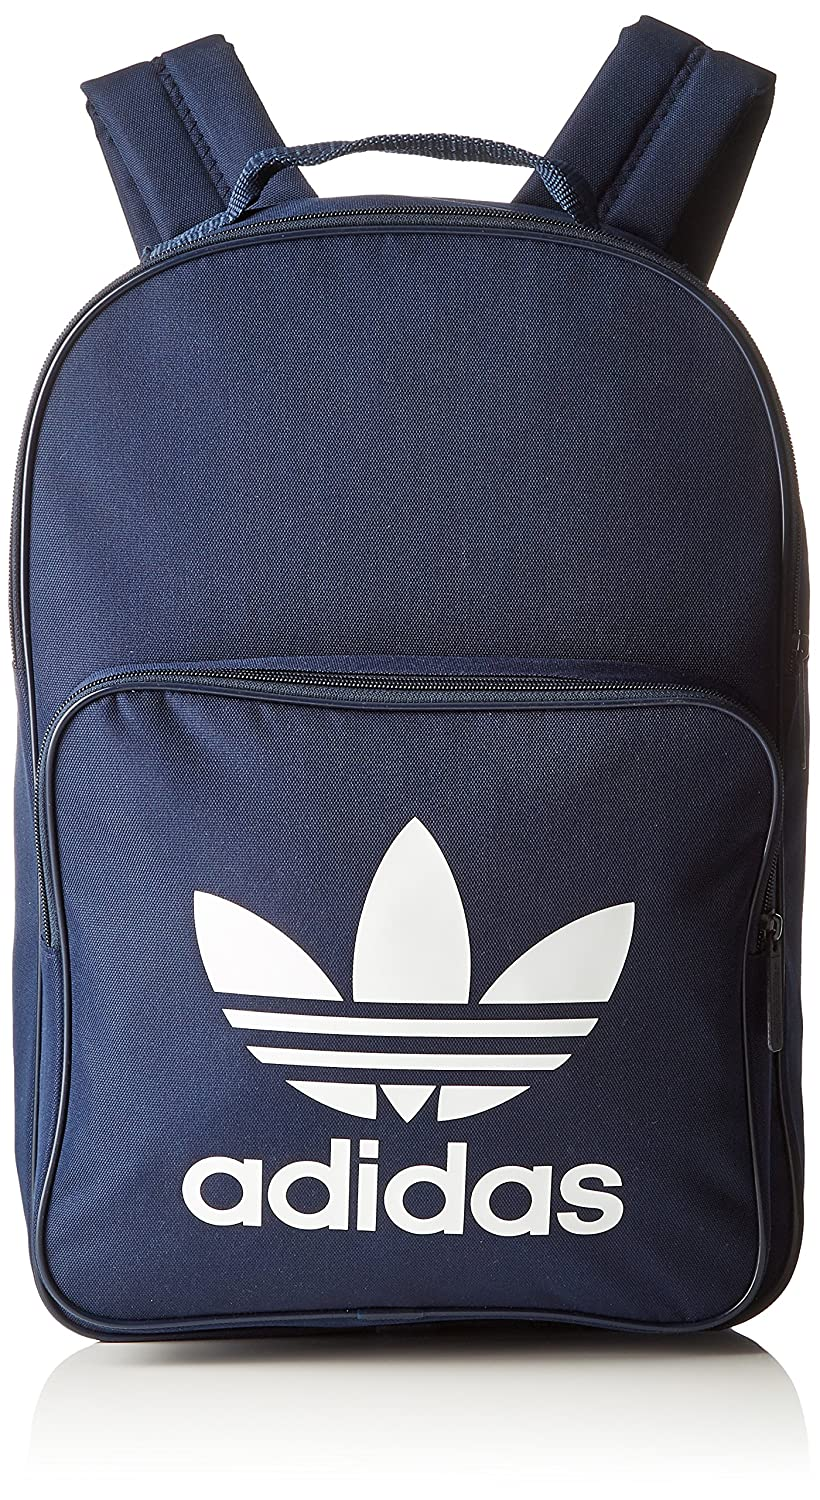 0b38660adc89 Top 10 wholesale Adidas Originals Backpack - Chinabrands.com